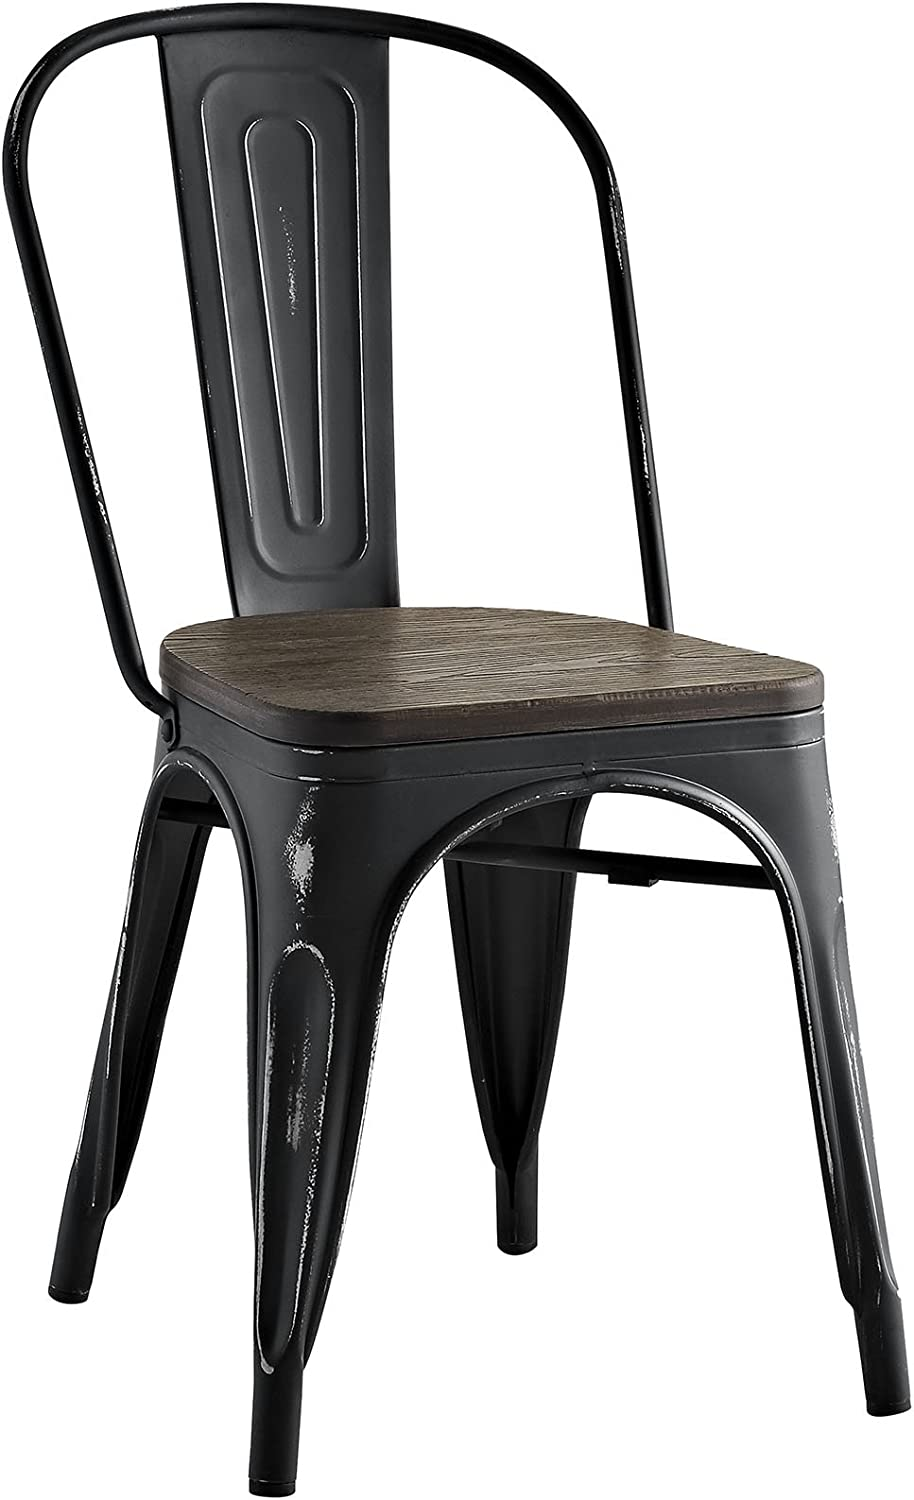 Modway Promenade Stackable Modern Aluminum Bistro Dining Side Chair With Bamboo Seat in Black